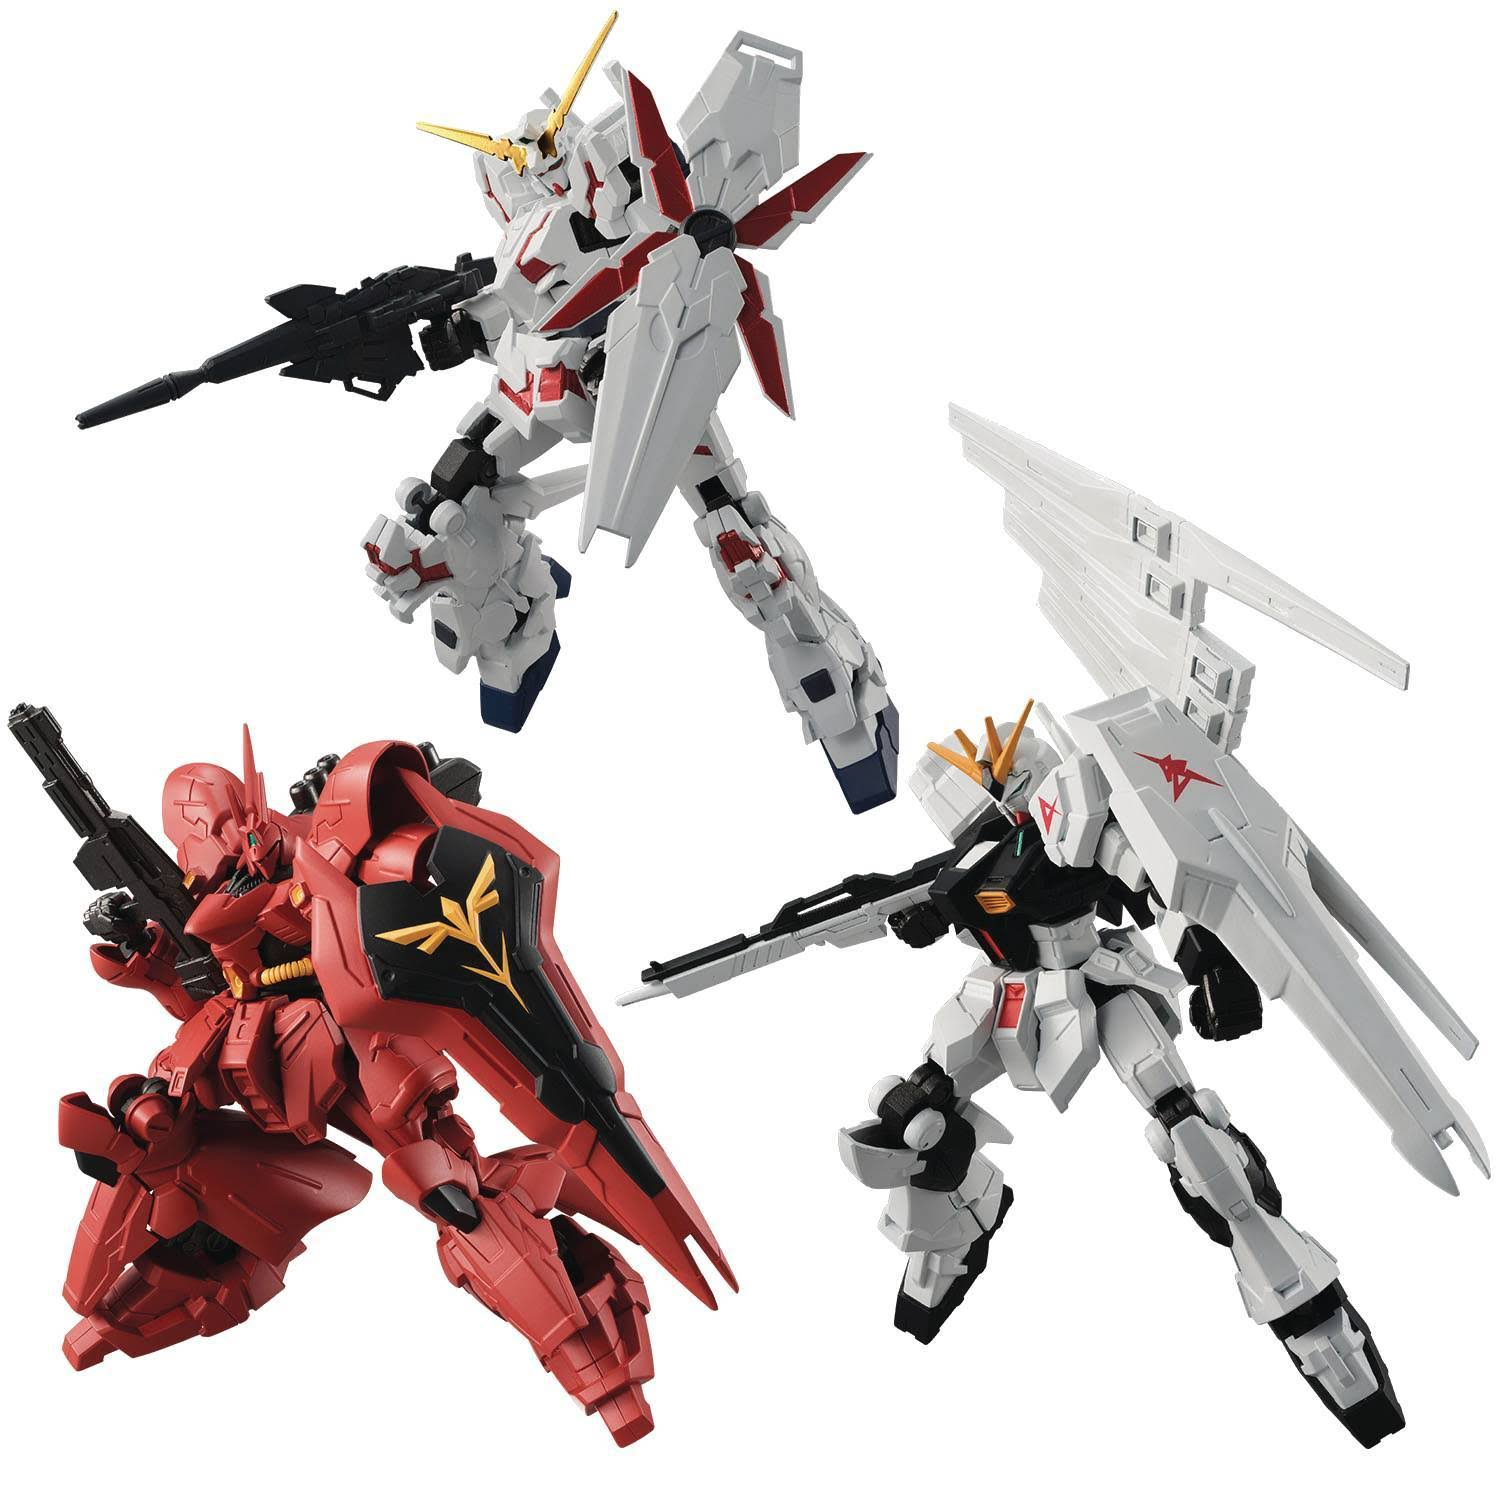 Bandai Mobile Suit Gundam G Frame Set